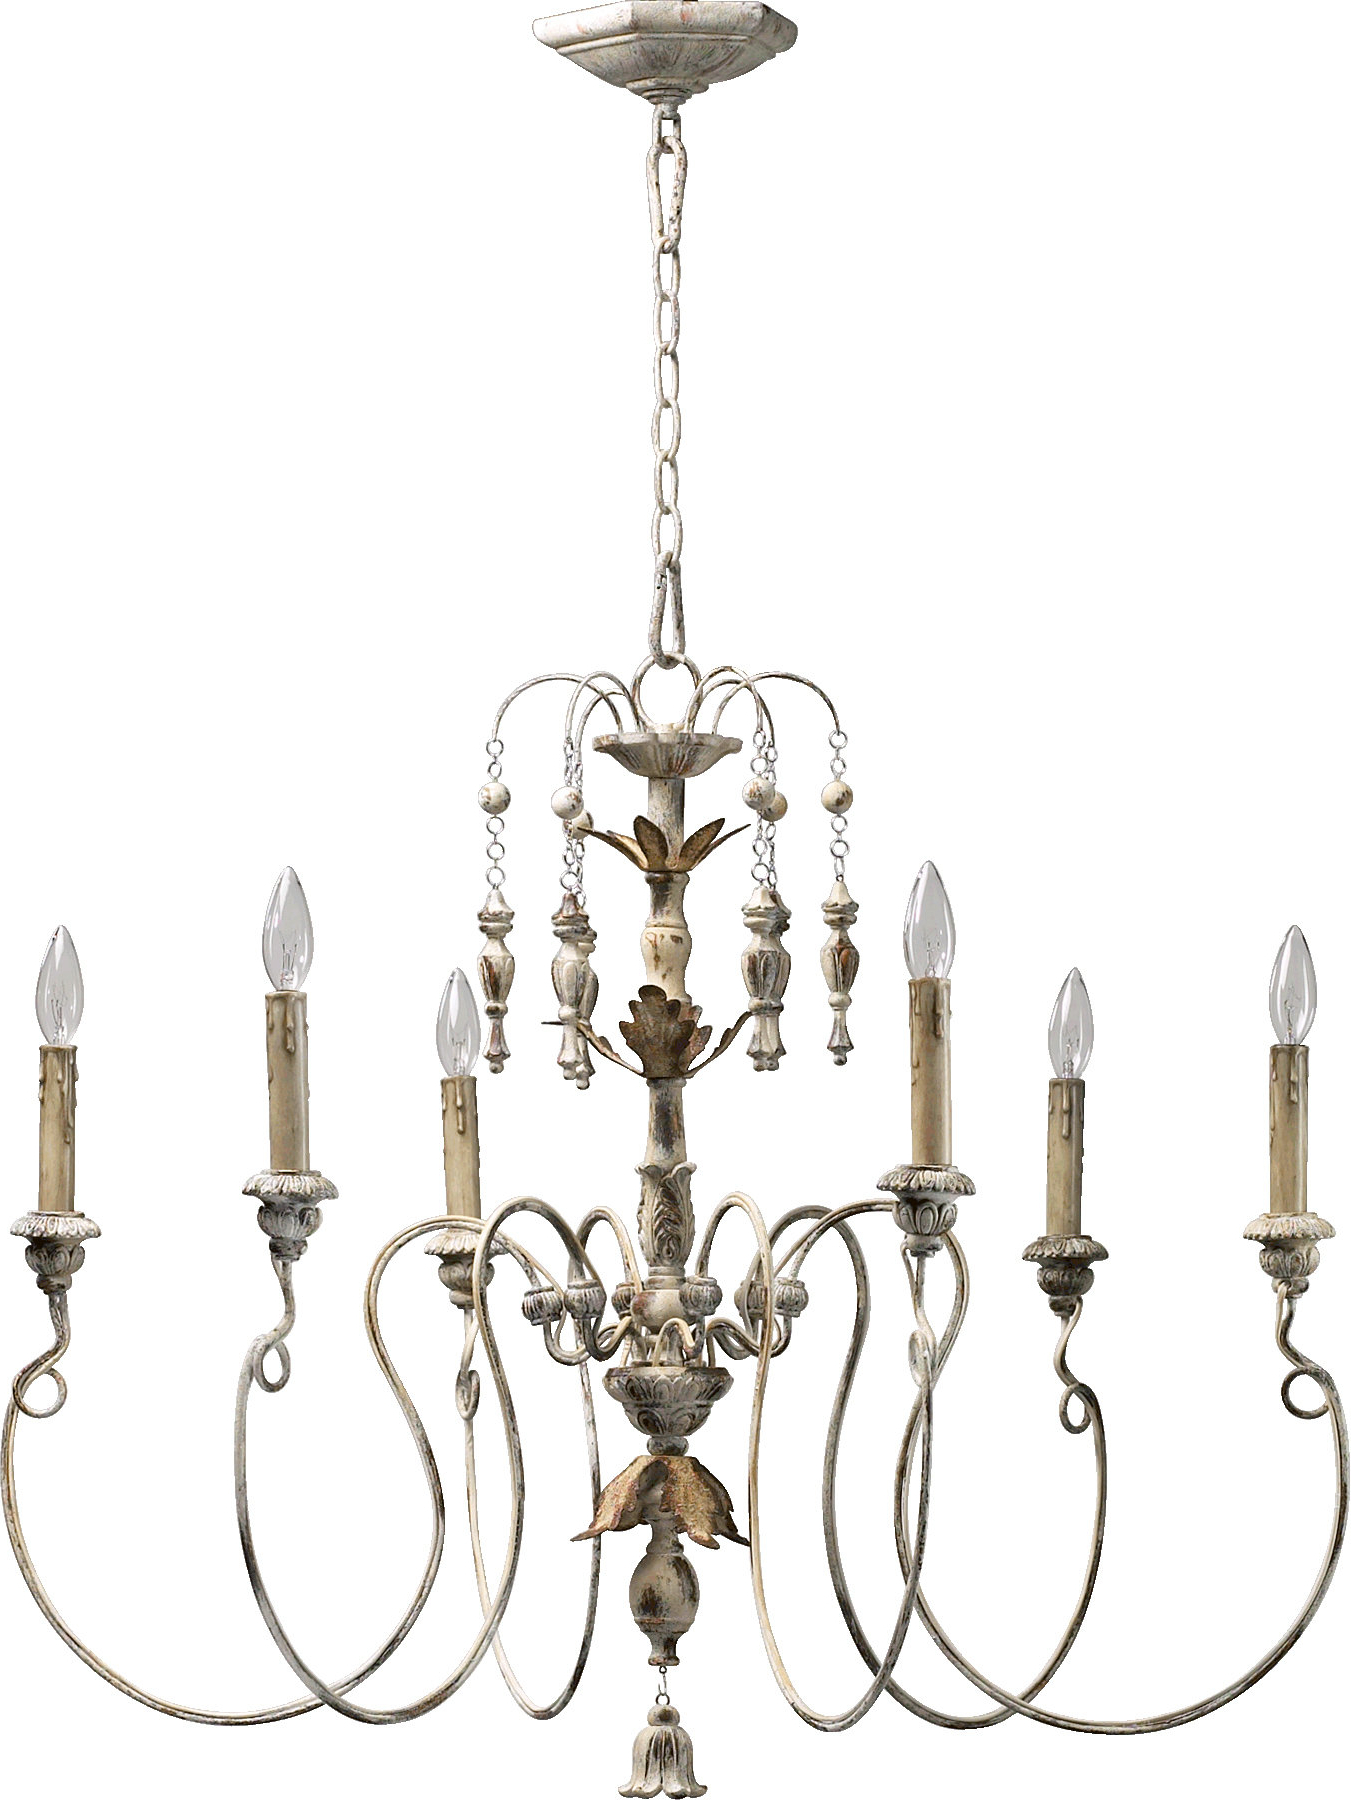 Paladino 6 Light Chandelier Inside Most Current Corneau 5 Light Chandeliers (View 8 of 25)